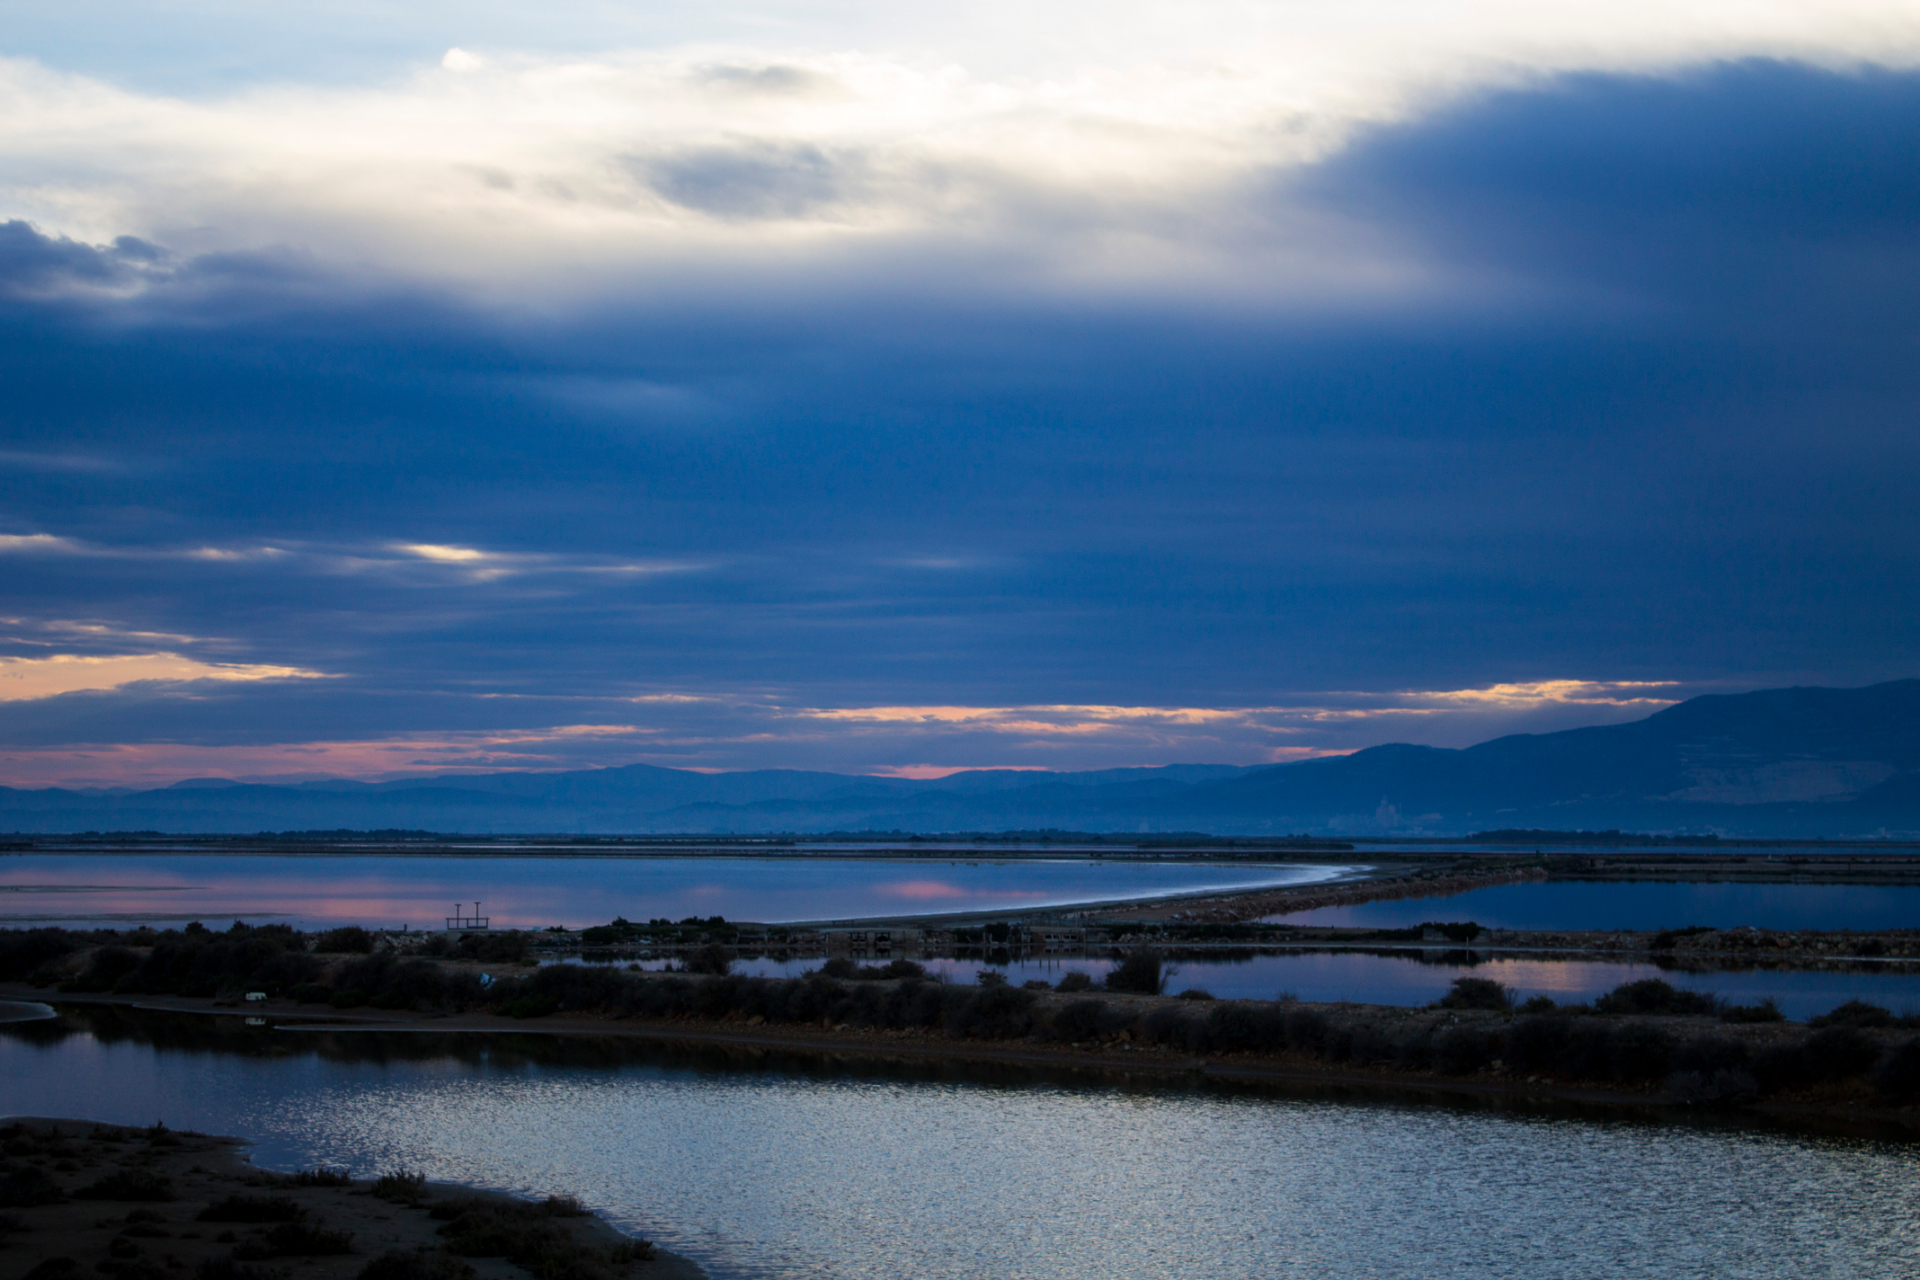 Punta de la Banya in the Ebro Delta. This may have been about the view (with the sunset behind the mountains) that Ravi had when he arrived here yesterday evening. Photographer: Xavier Grané Feliu.